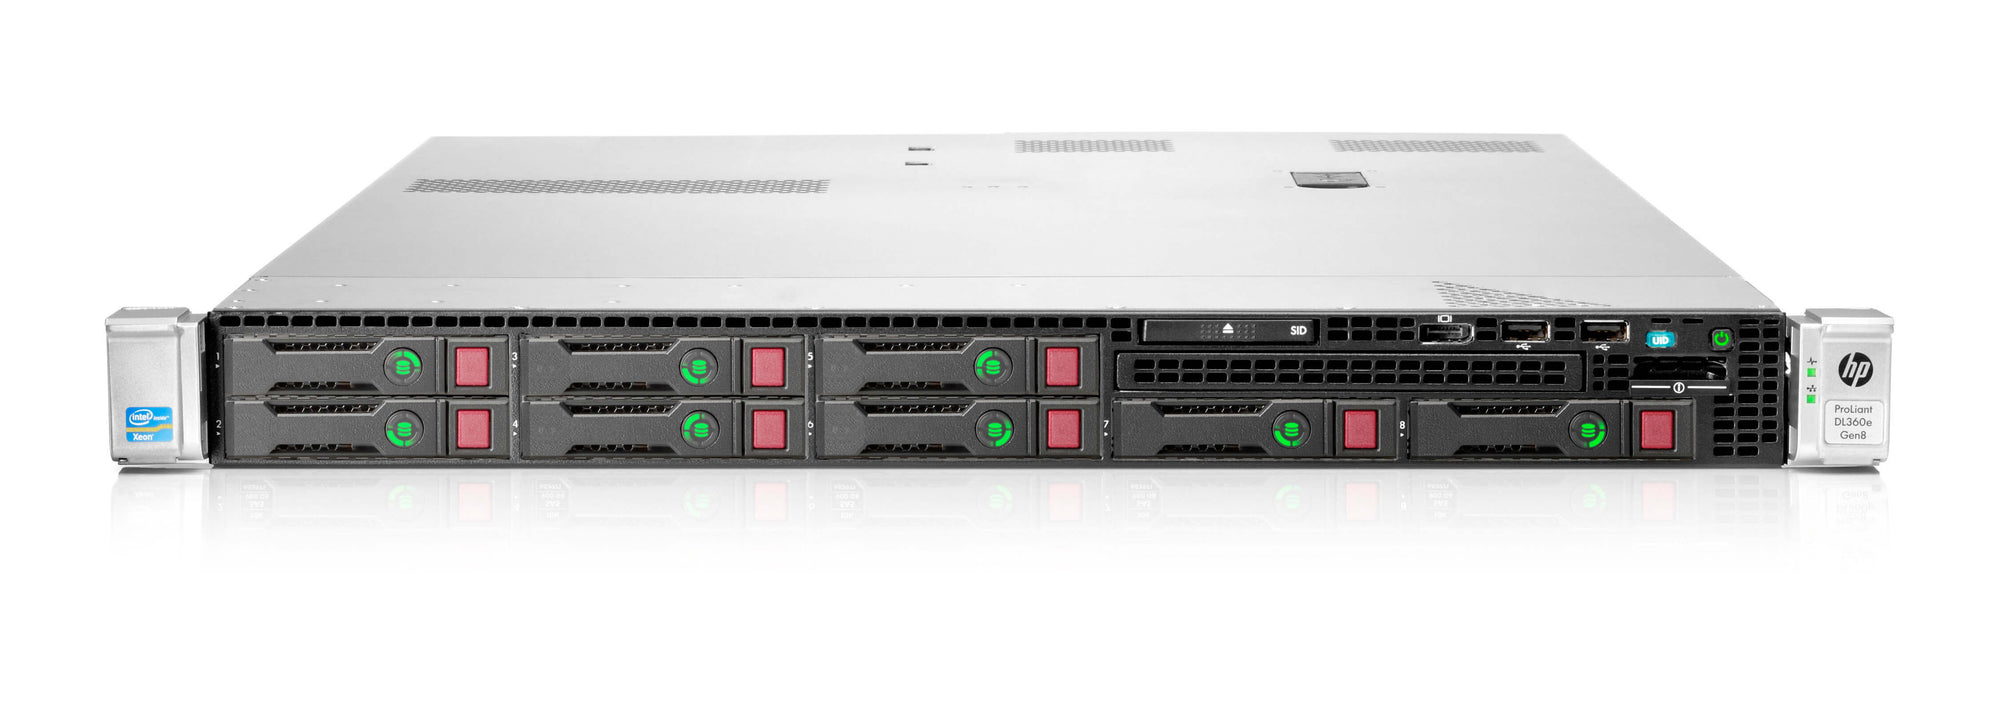 661189-B21 - HPE ProLiant DL360e Gen8 8SFF Server Chassis